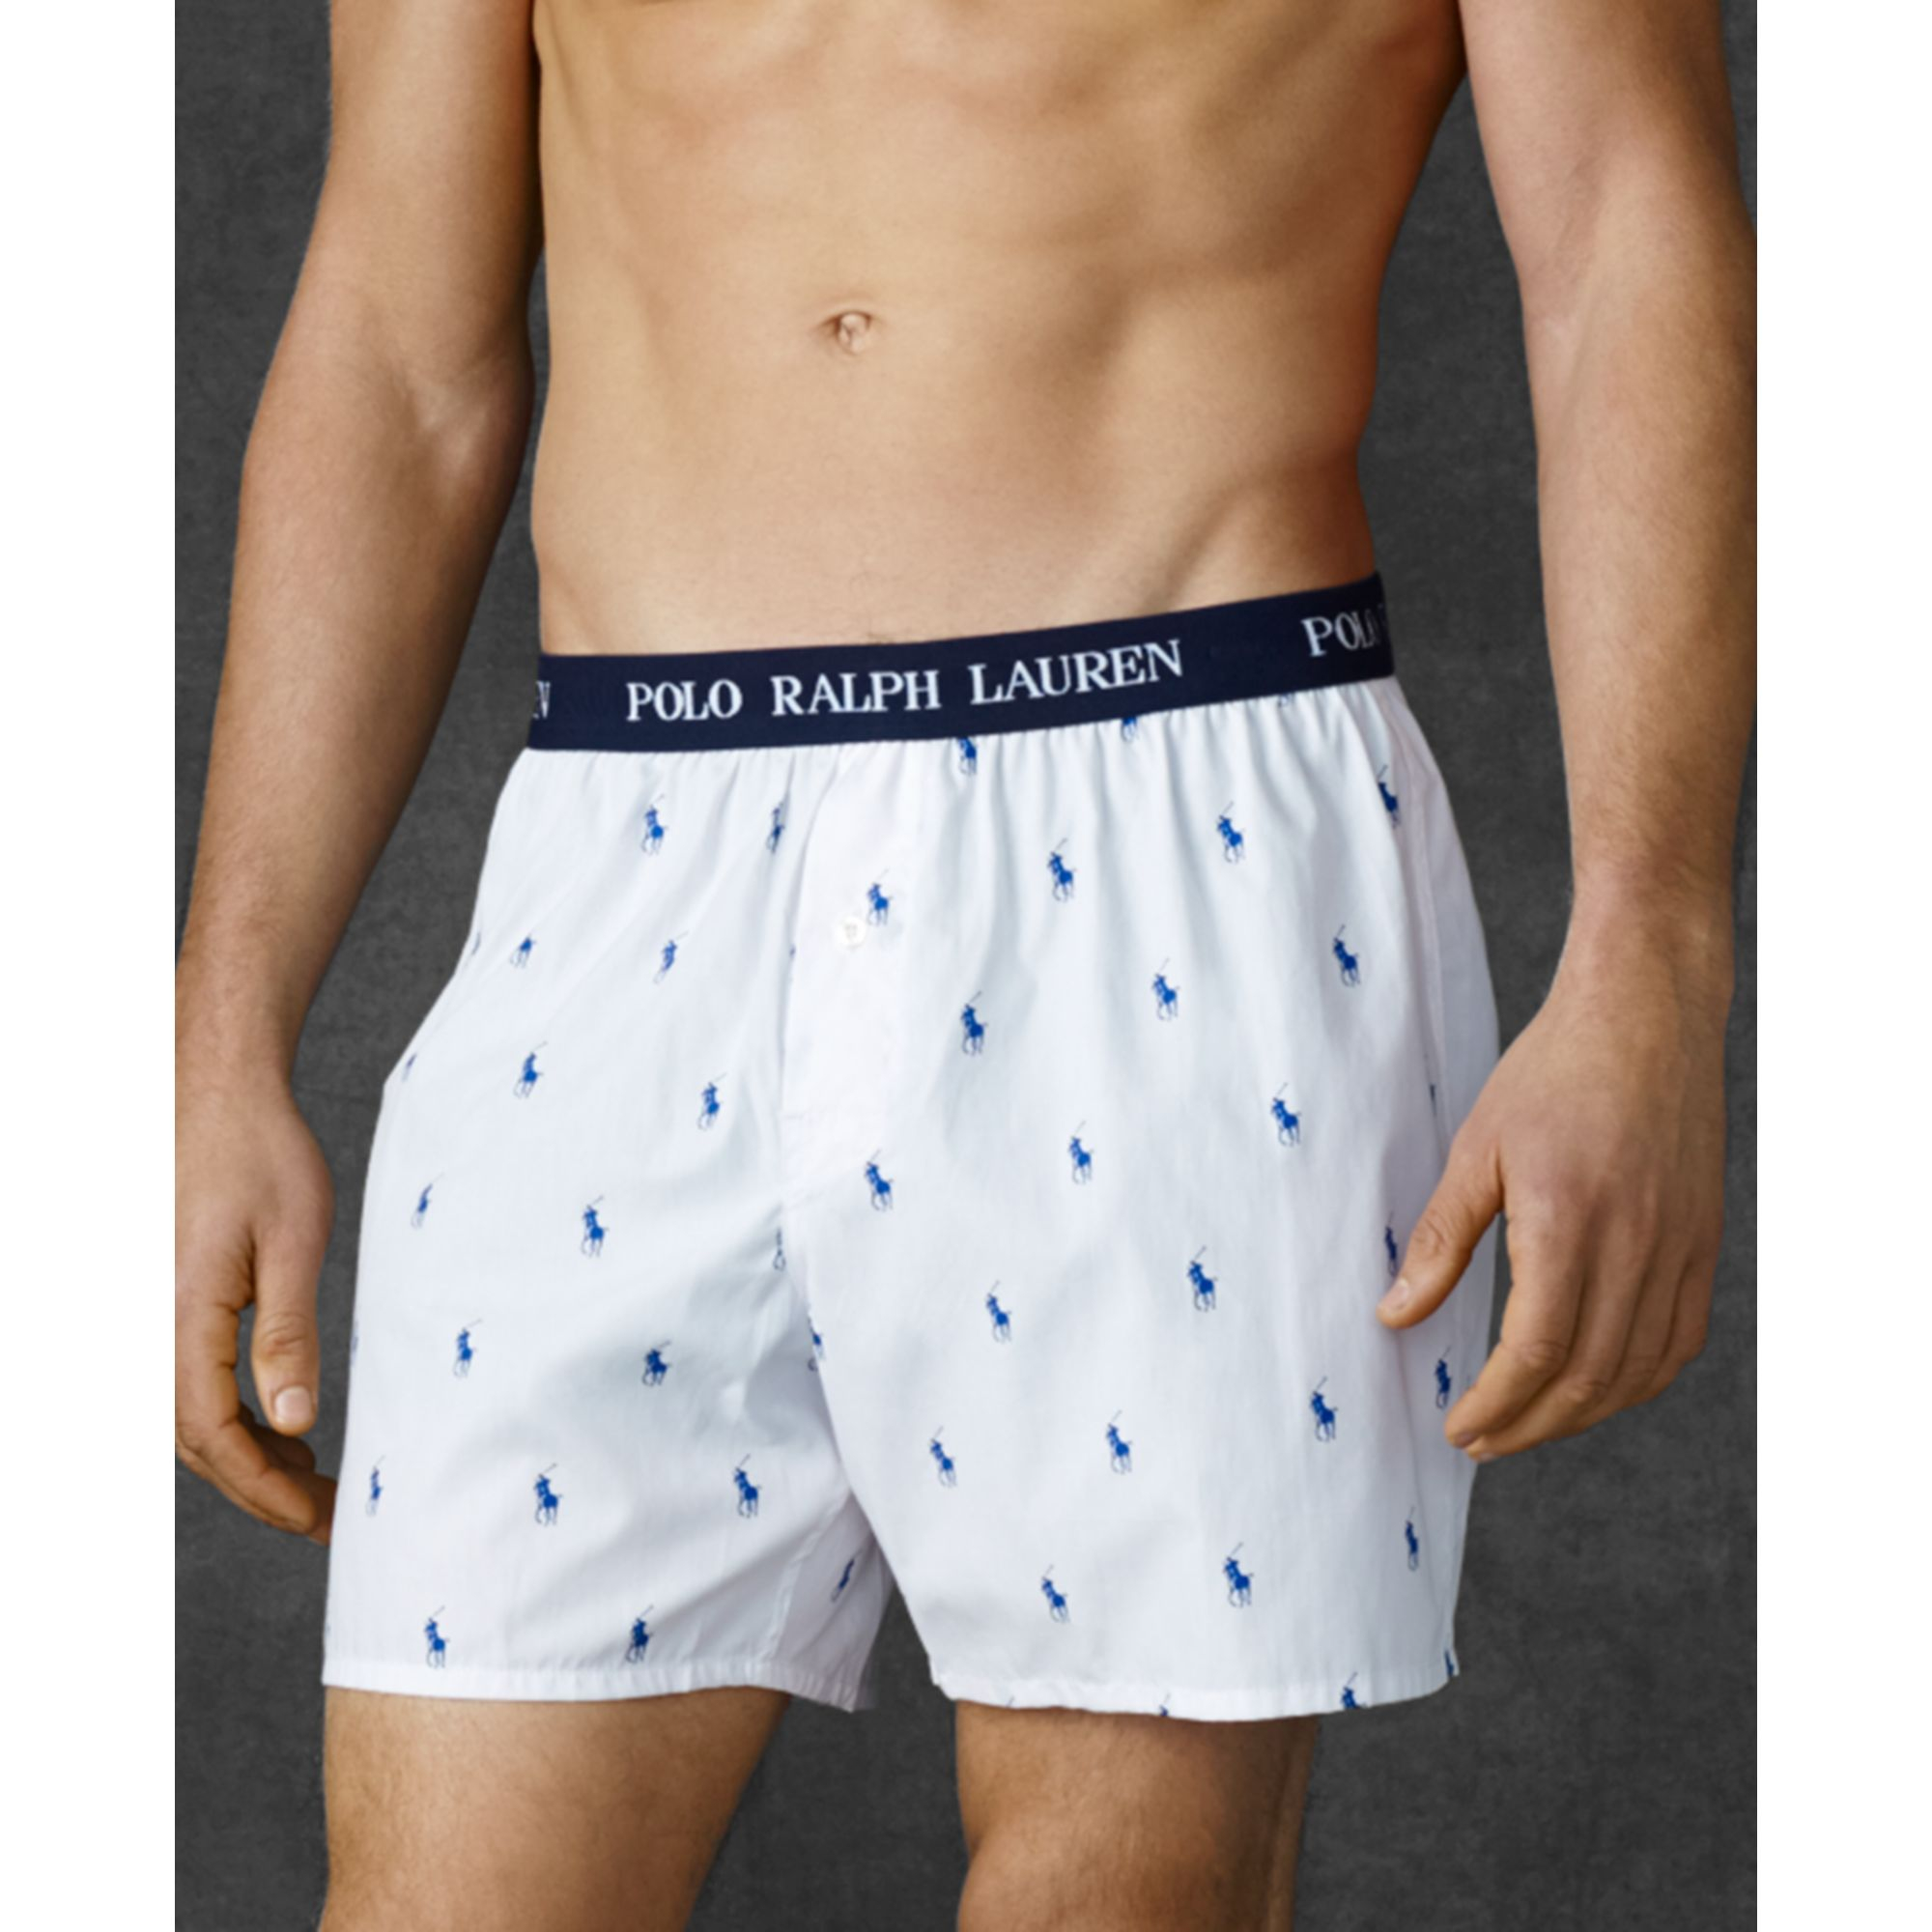 lyst ralph lauren polo player woven boxers in white for men. Black Bedroom Furniture Sets. Home Design Ideas